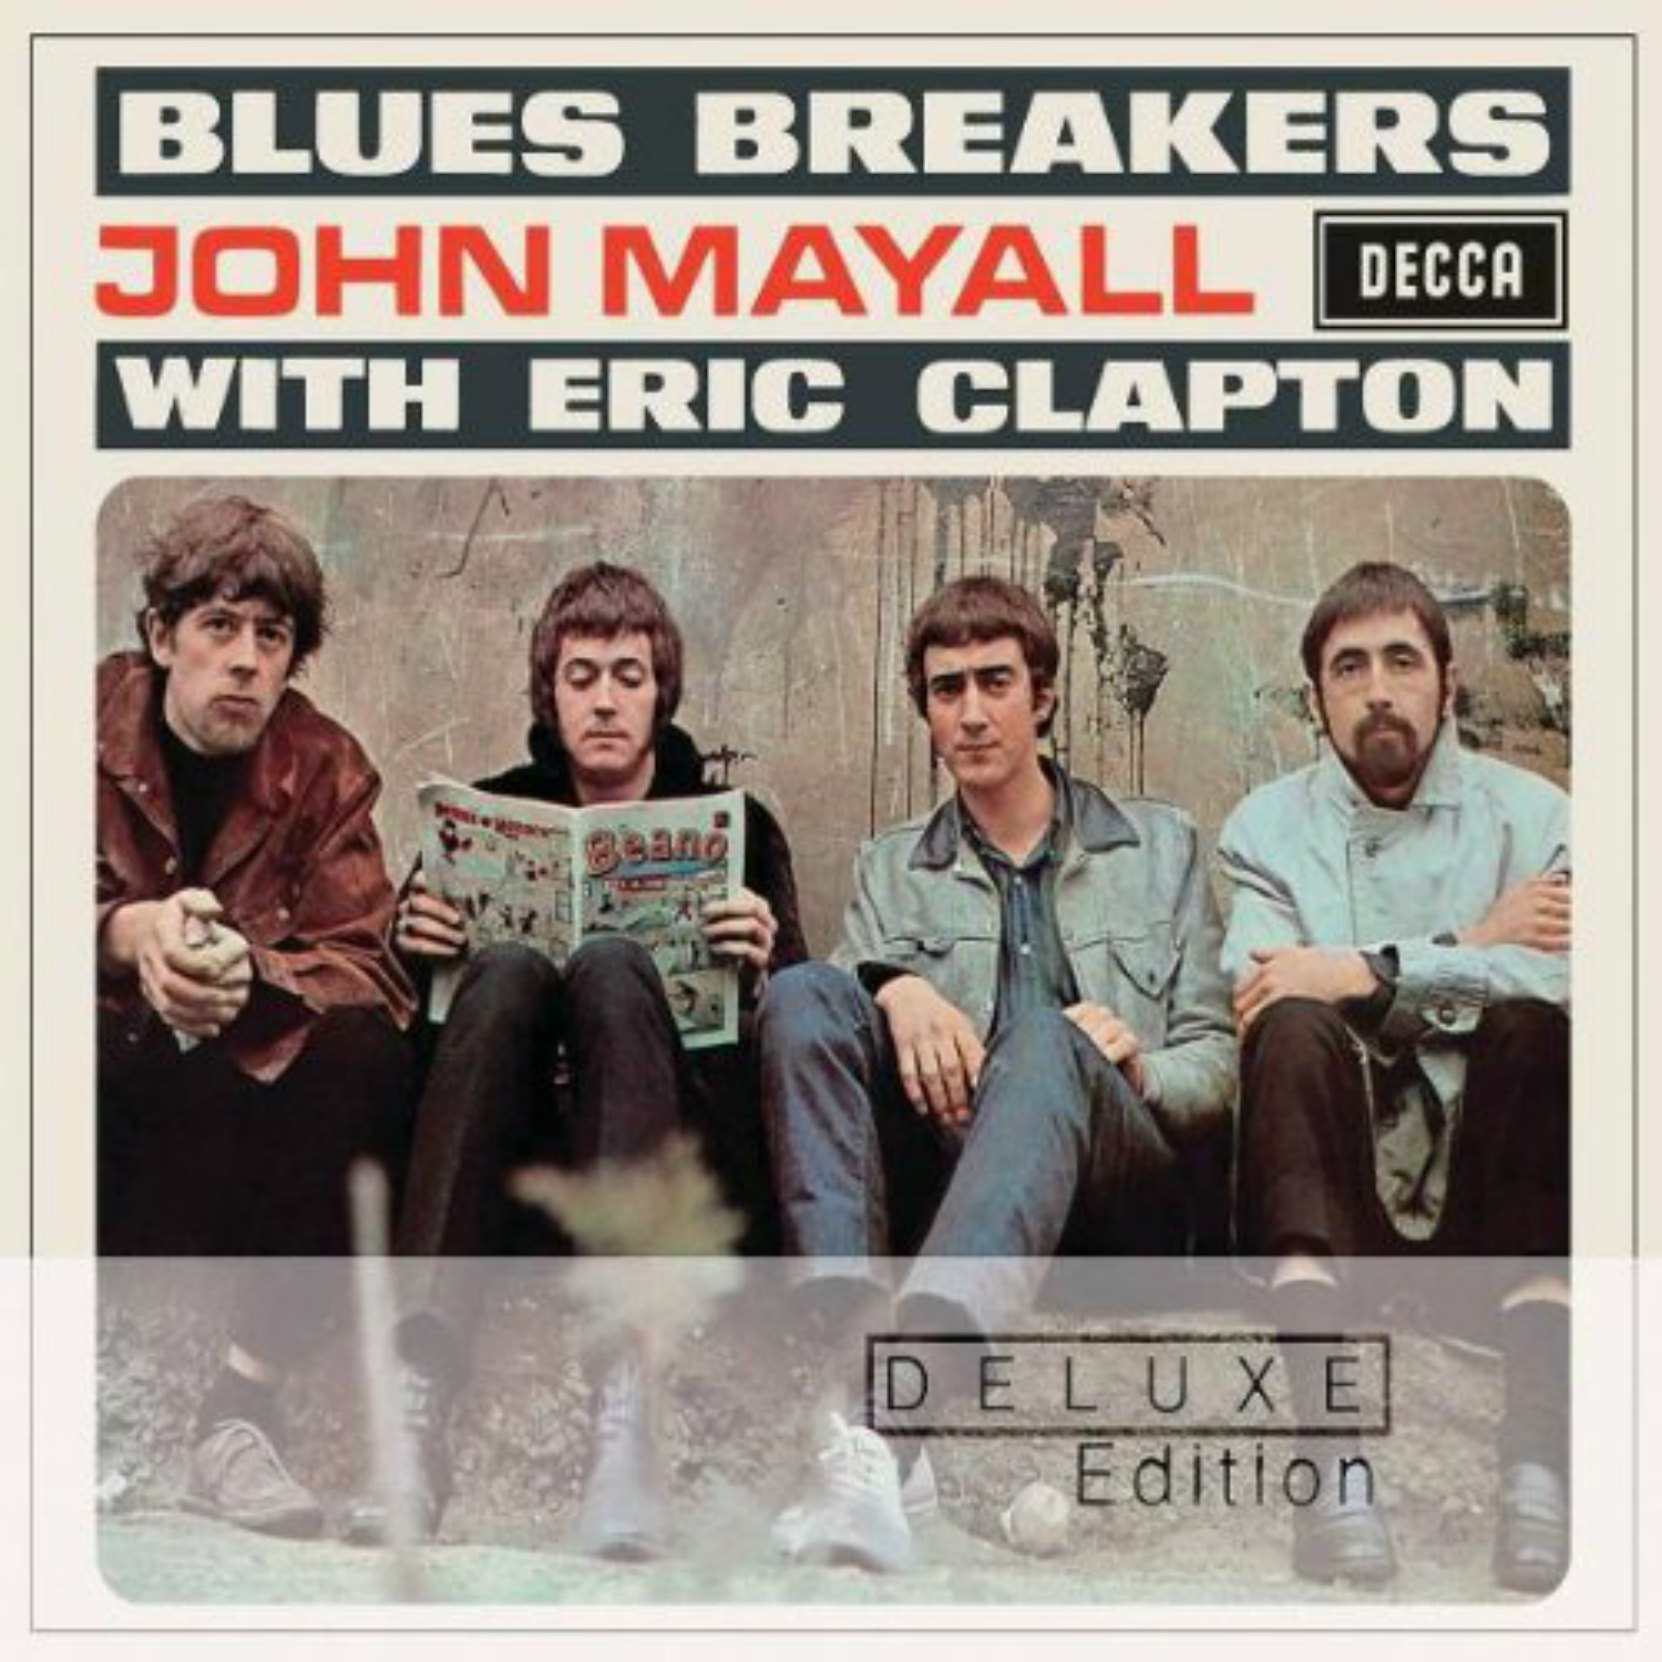 CD Cover, Blues Breakers With Eric Clapton by John Mayall, Deluxe edition